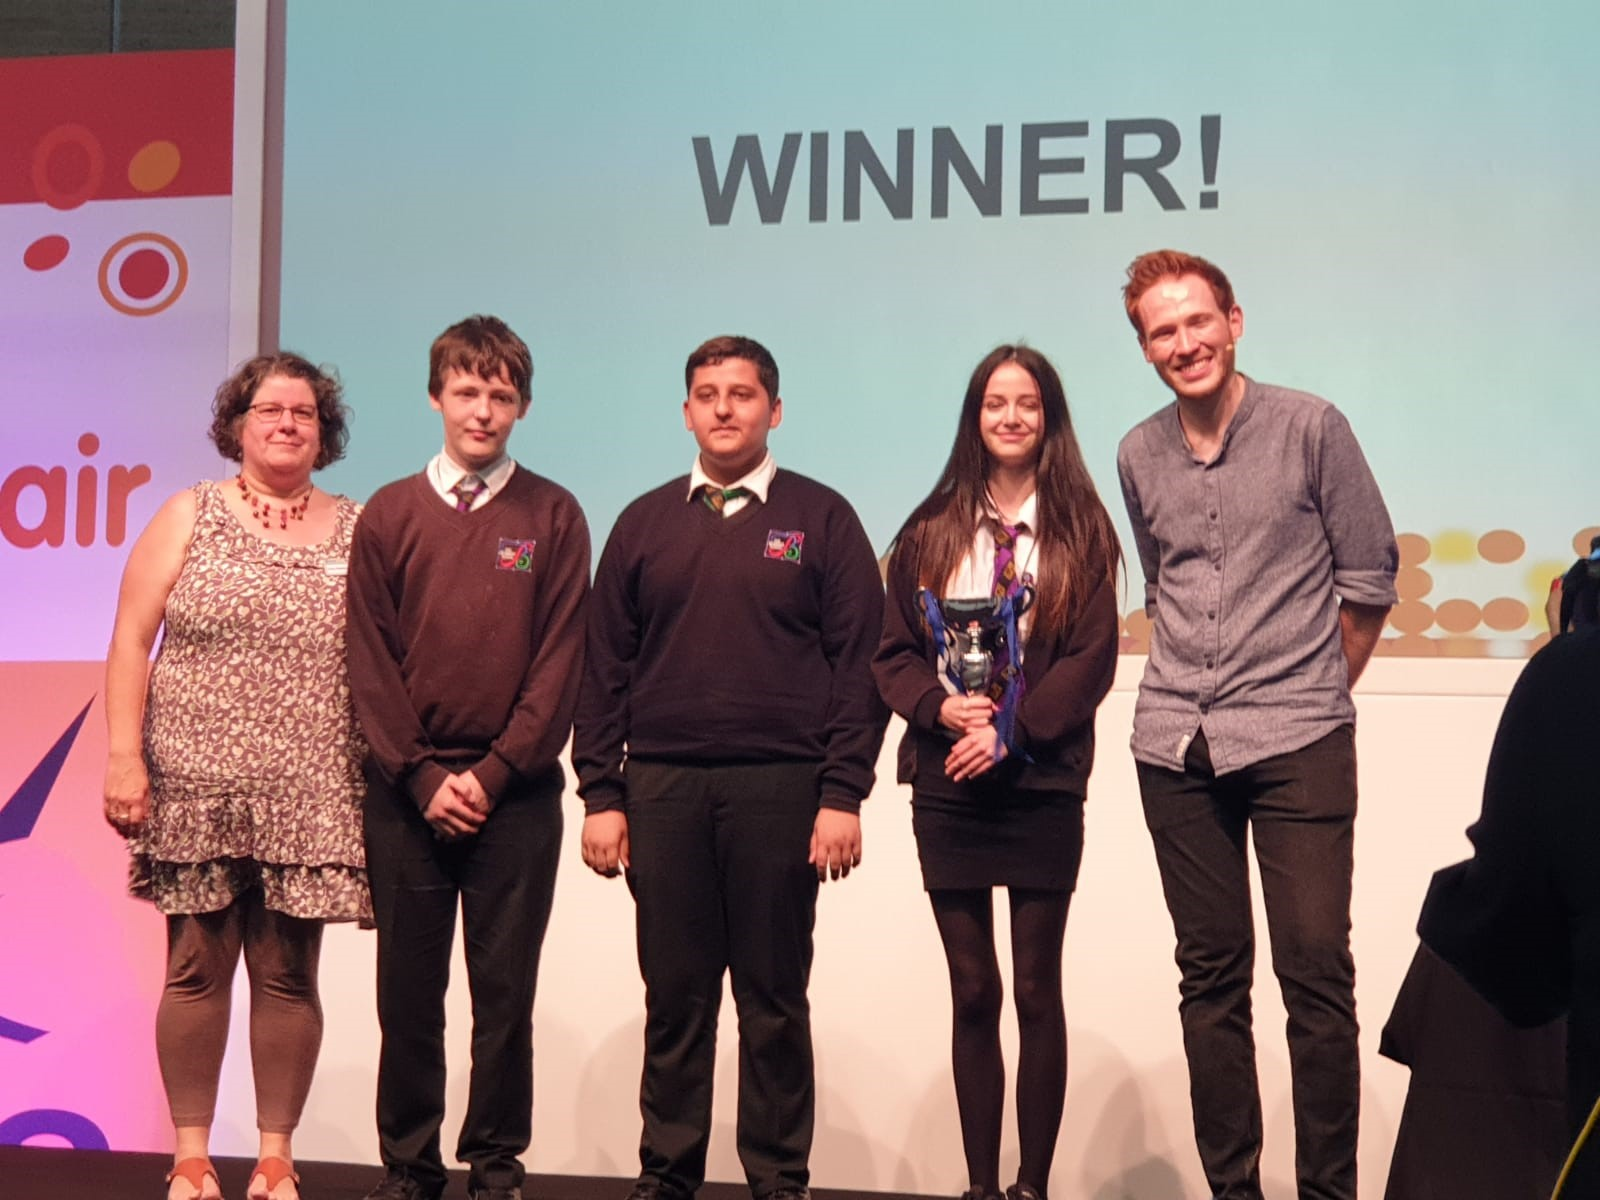 The Bemrose School celebrate their recent award win. Penguin PR: public relations, media and communications